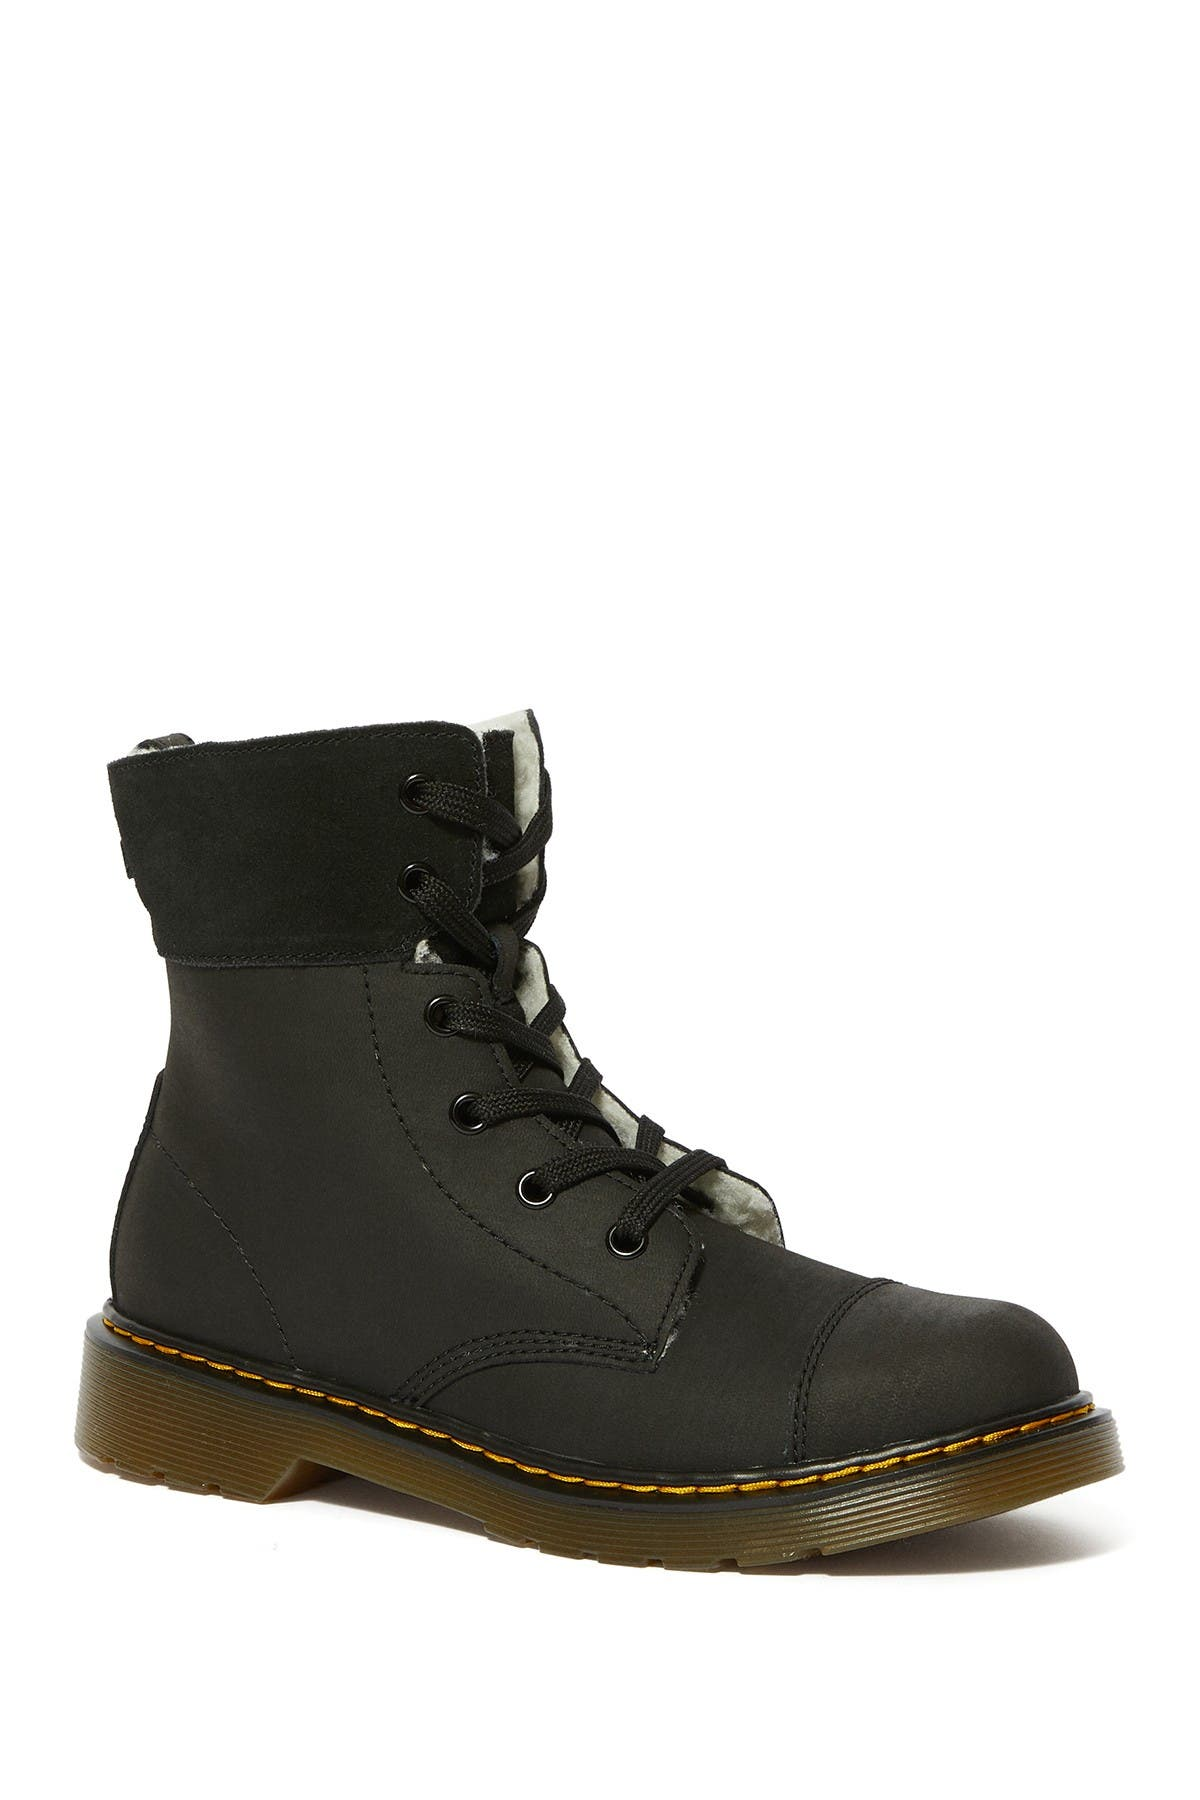 Image of Dr. Martens Aimlita Faux Shearling Lined Combat Boot